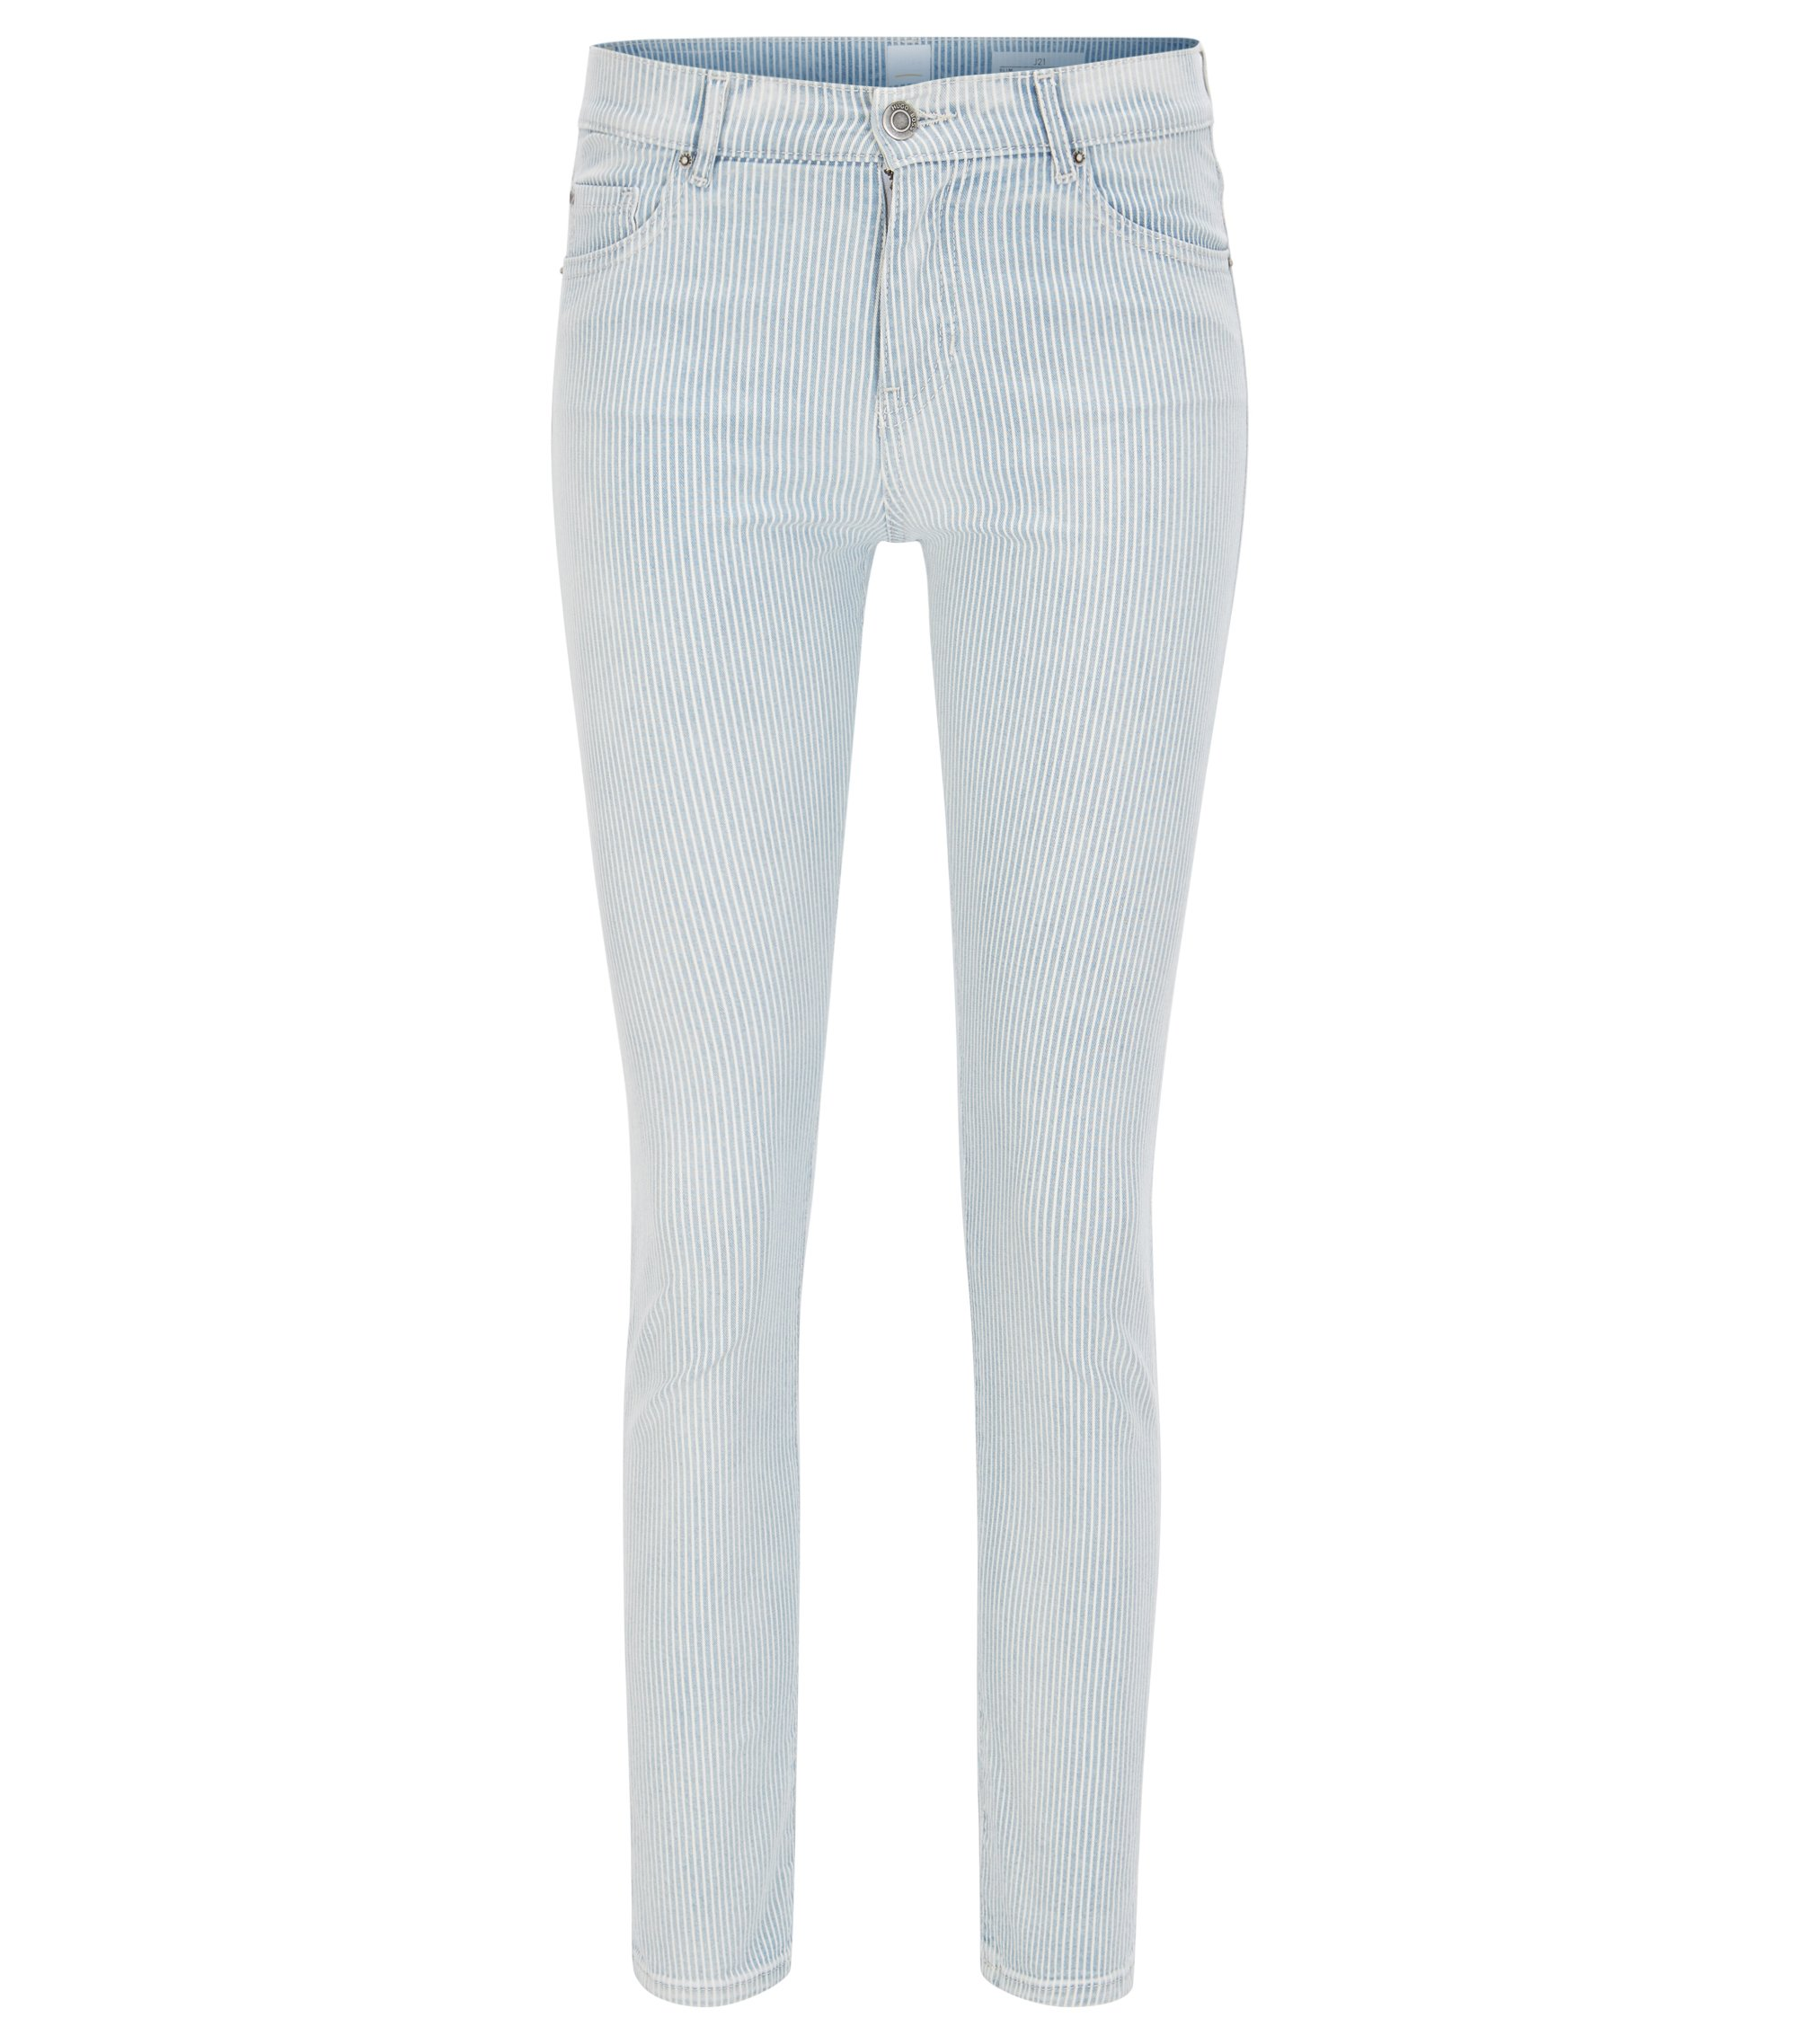 Slim-Fit Jeans aus komfortablem Stretch-Denim in Cropped-Länge, Hellblau